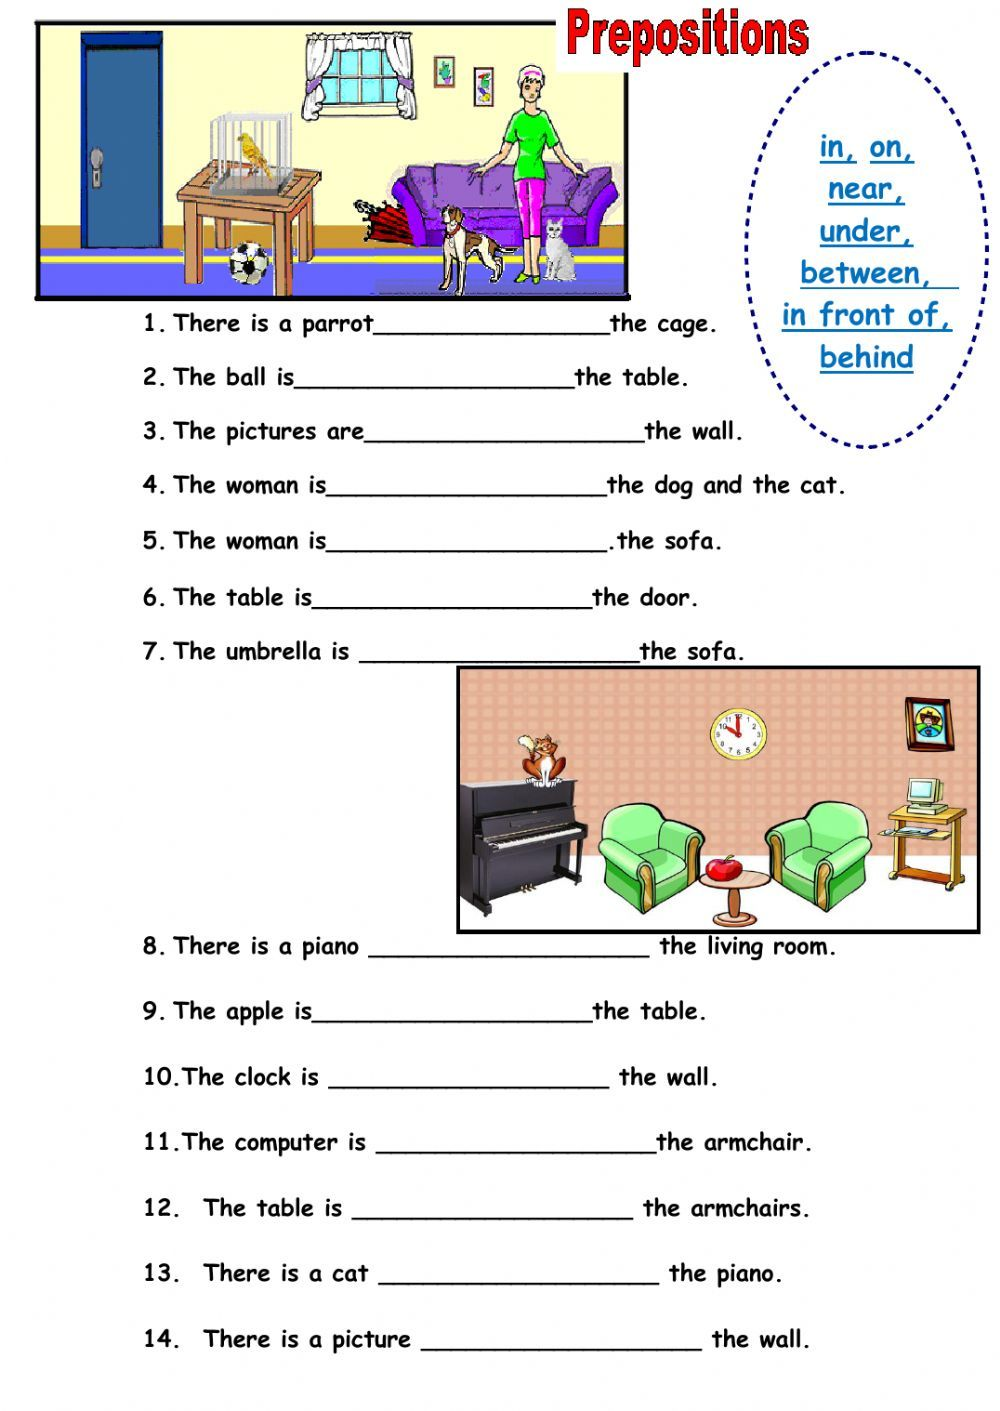 Prepositions of place interactive and downloadable worksheet. Check your  answers online…   Preposition worksheets [ 1411 x 1000 Pixel ]